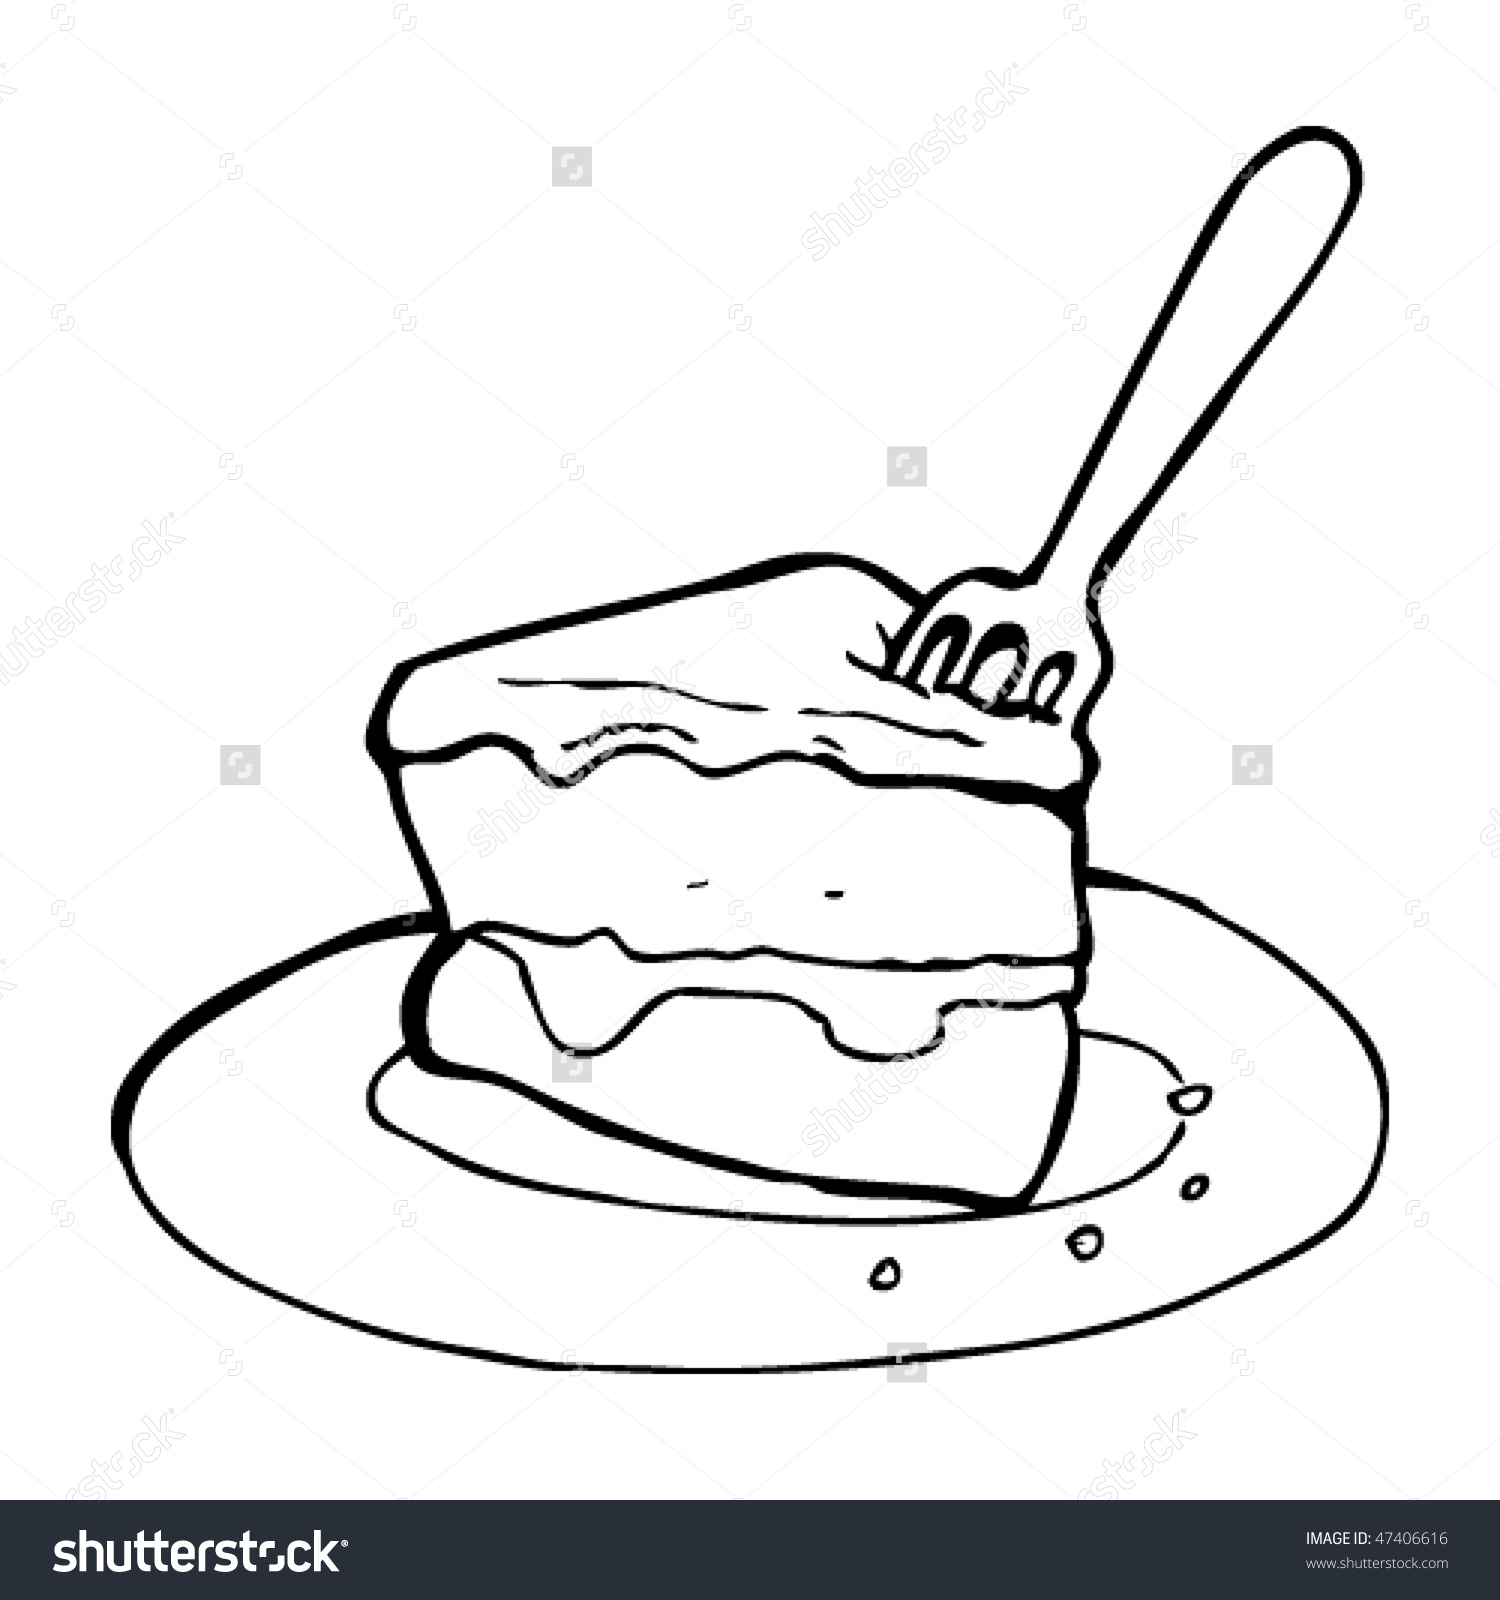 1500x1600 Slice Of Cake Drawing Drawing Slice Cake Stock Vector 47406616